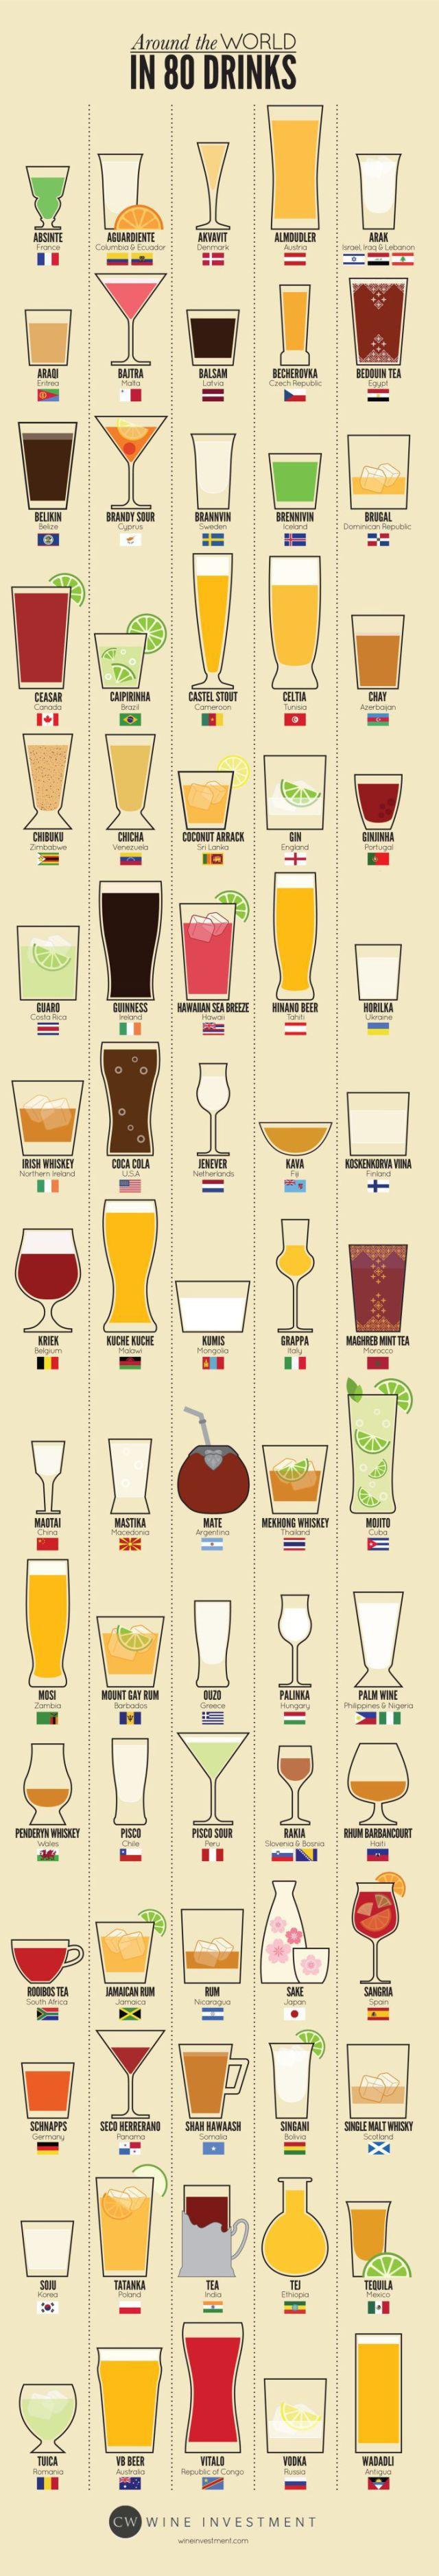 80 Signature Drinks from Around the World